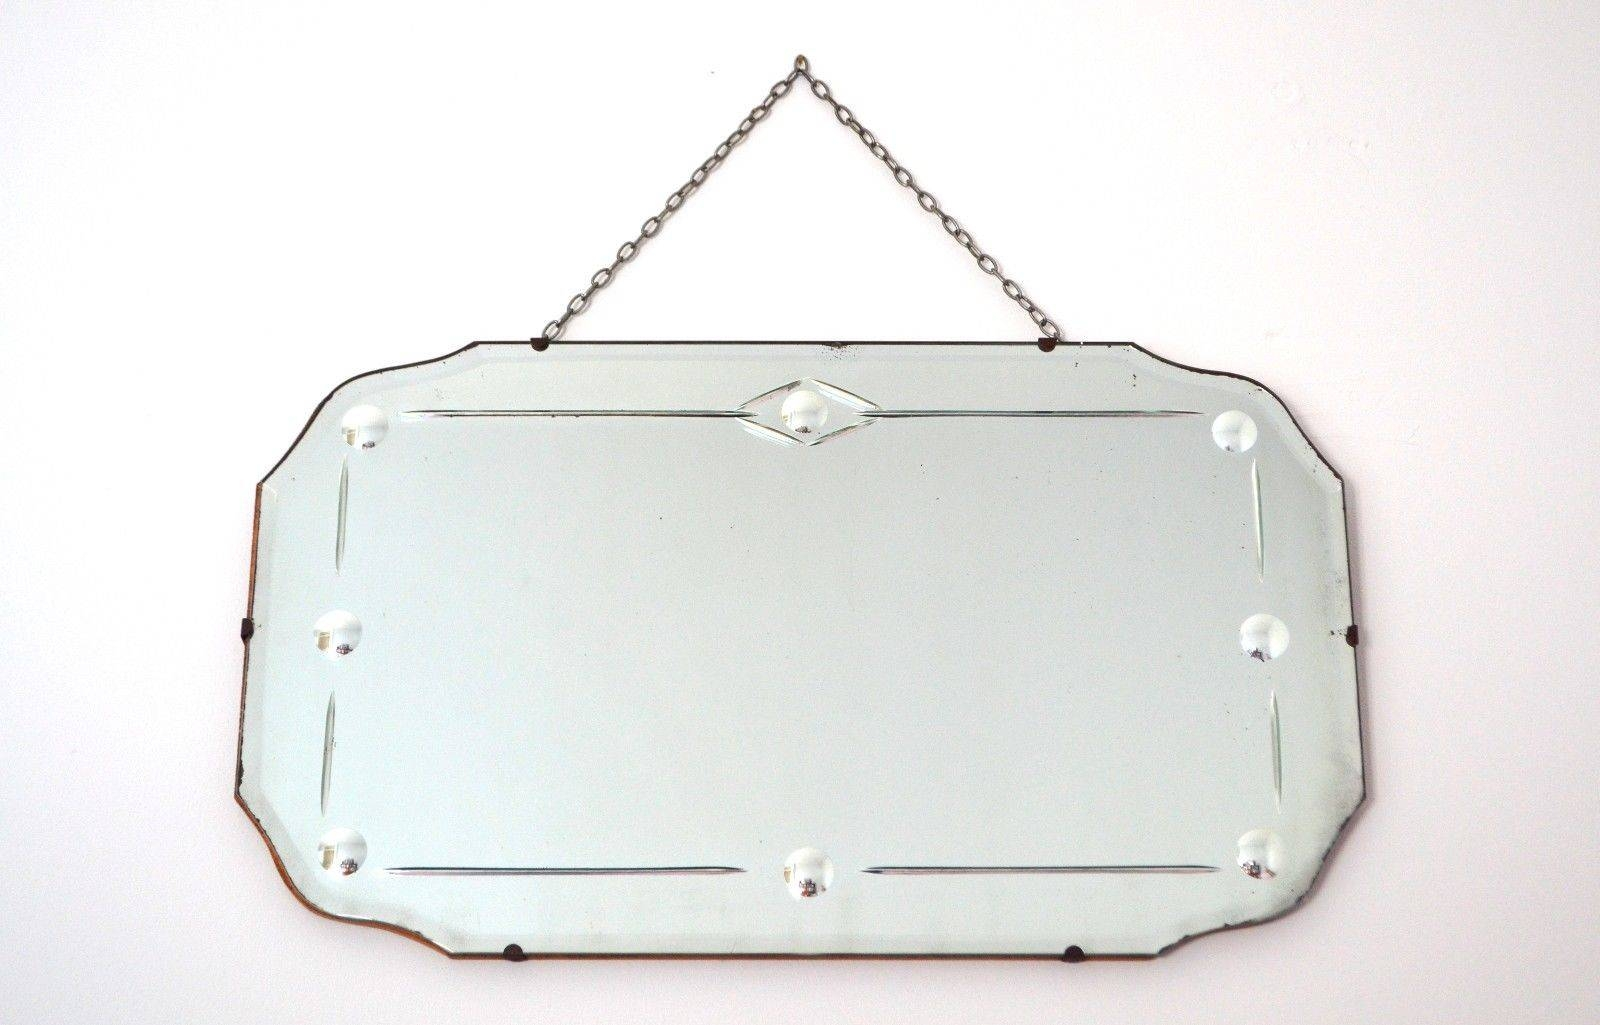 Original Vintage Art Deco 1930S Bevelled Hanging Wall Mirror With With Regard To Original Art Deco Mirrors (View 23 of 25)